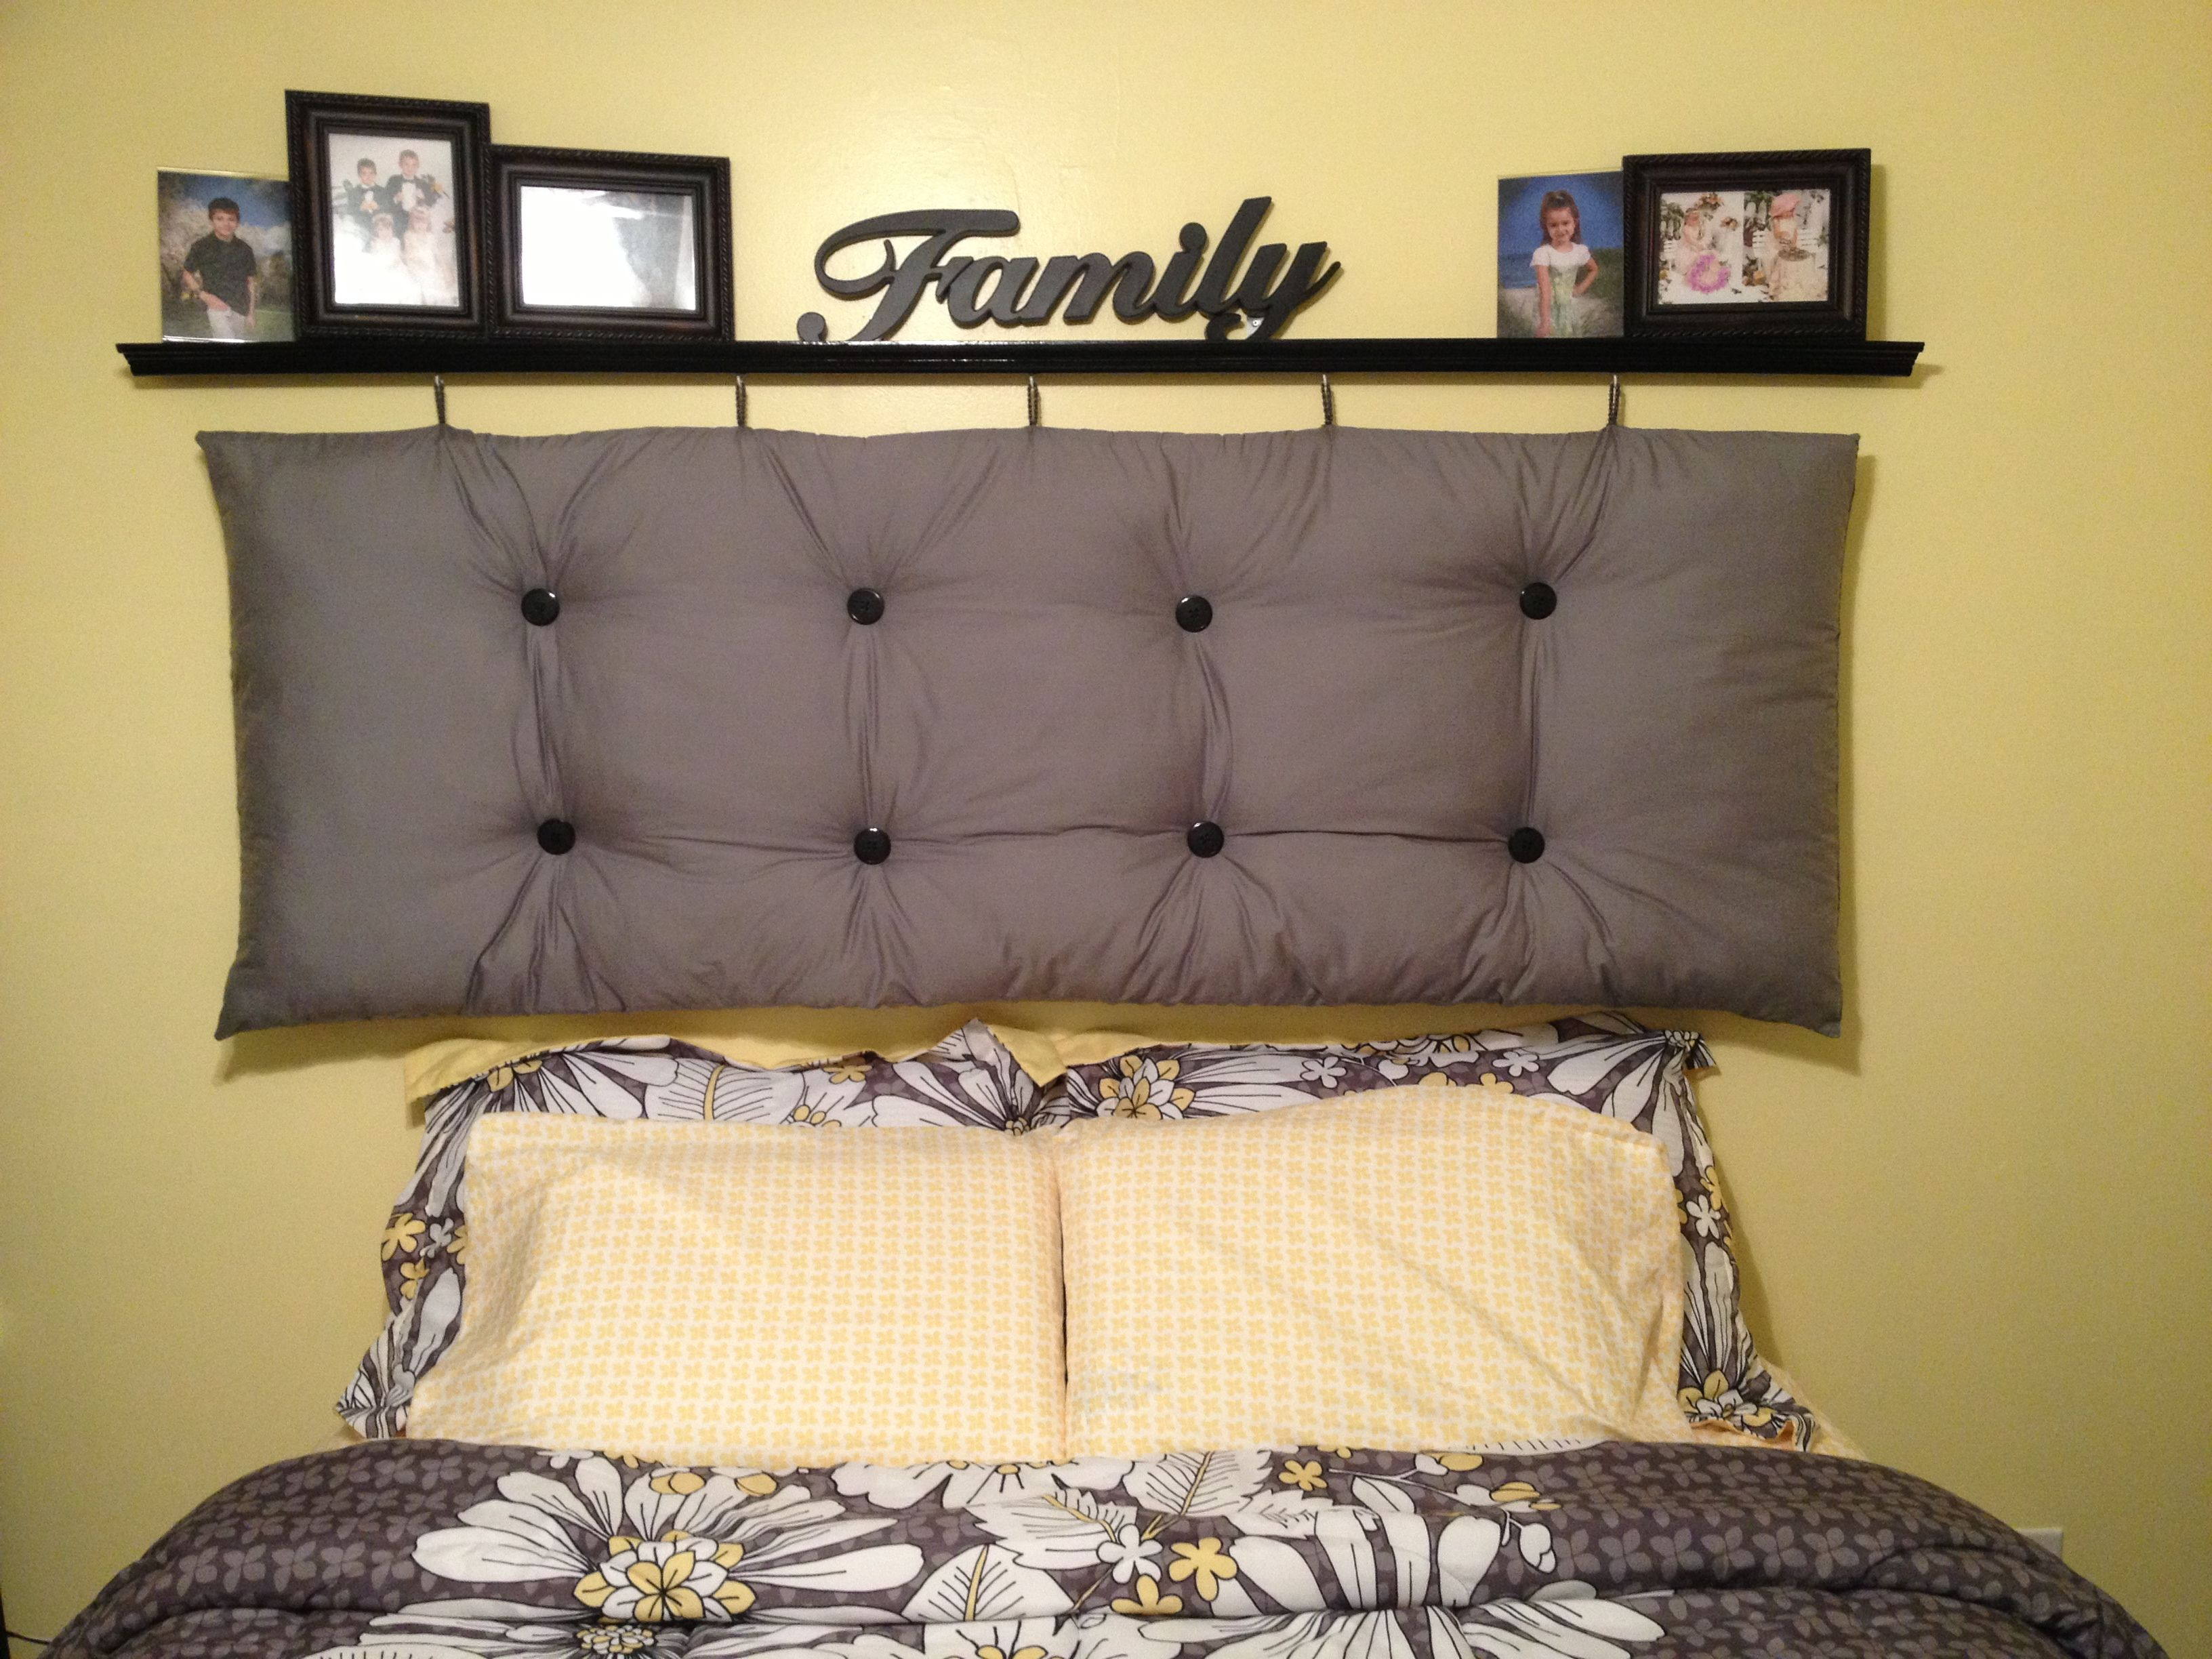 Affordable Diy Headboard Material, Buttons, Foam And Stuffing From Walmart